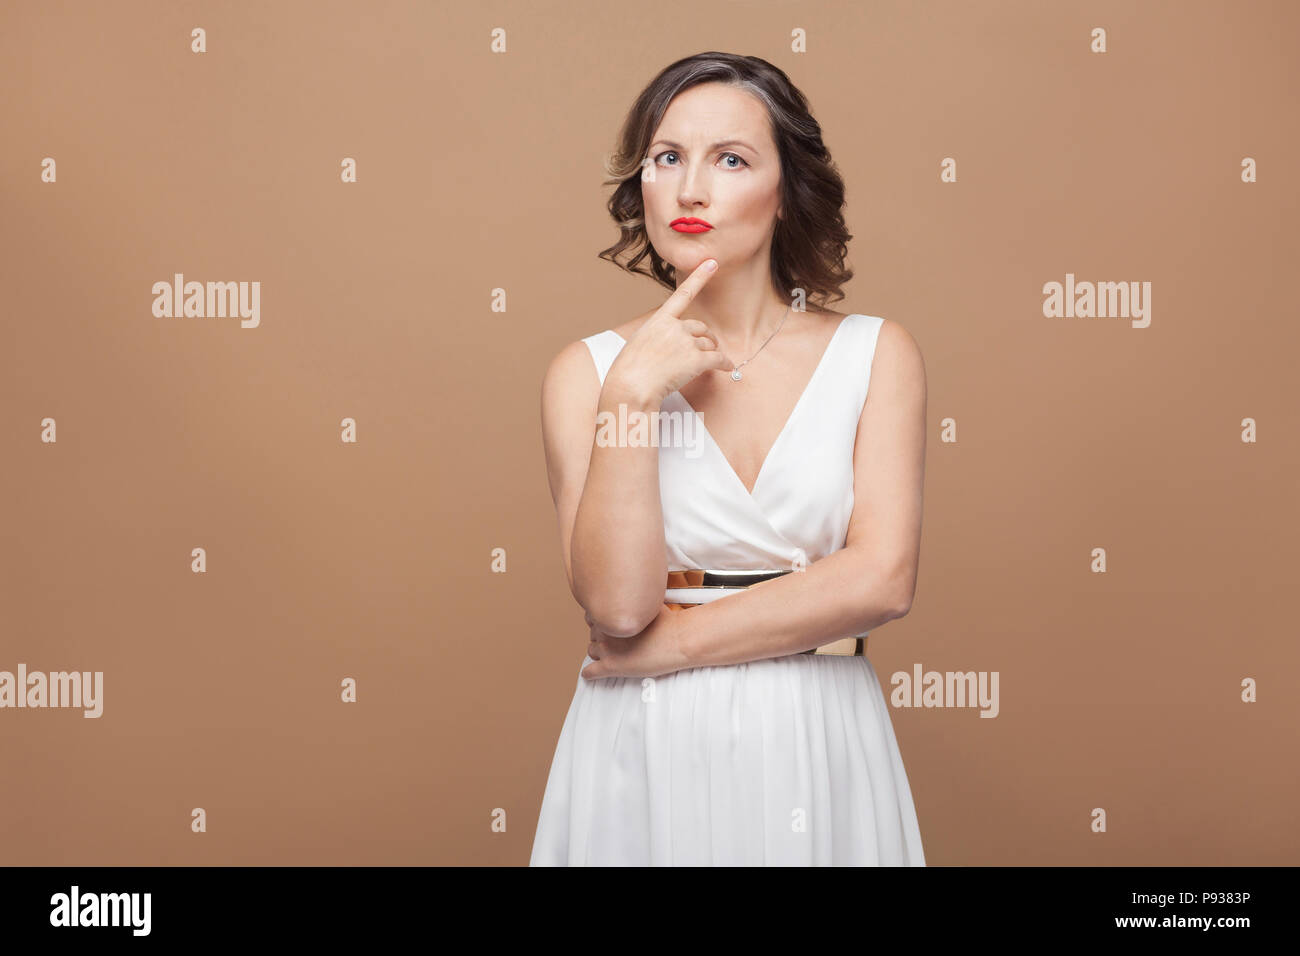 Beautiful middle aged woman thinking and puzzled. Emotional expressing woman in white dress, red lips makeup and dark curly hairstyle. Studio shot, in - Stock Image